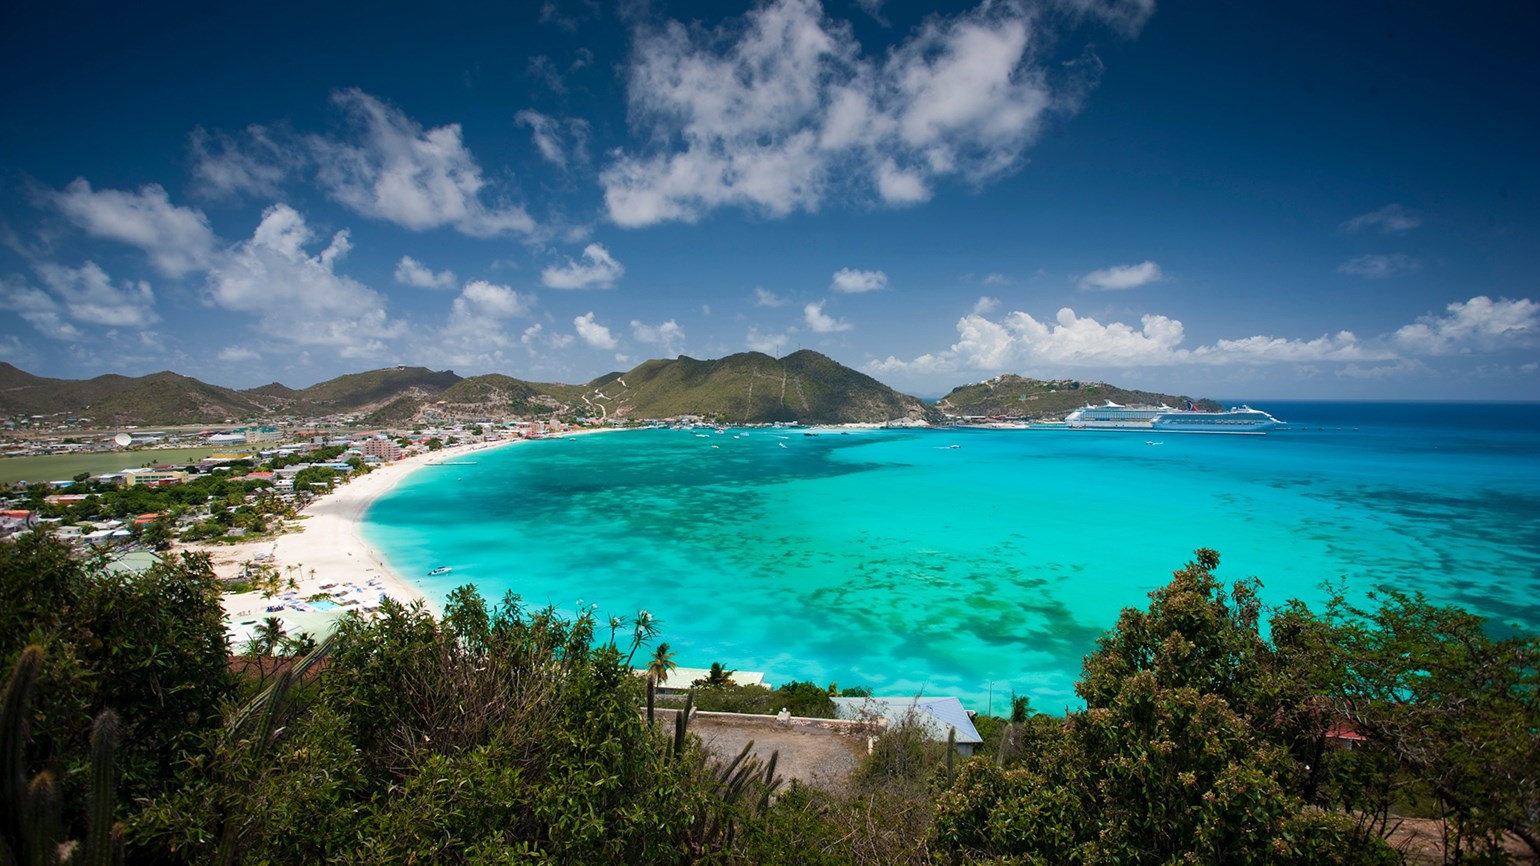 St. Maarten shuts out U.S. flights